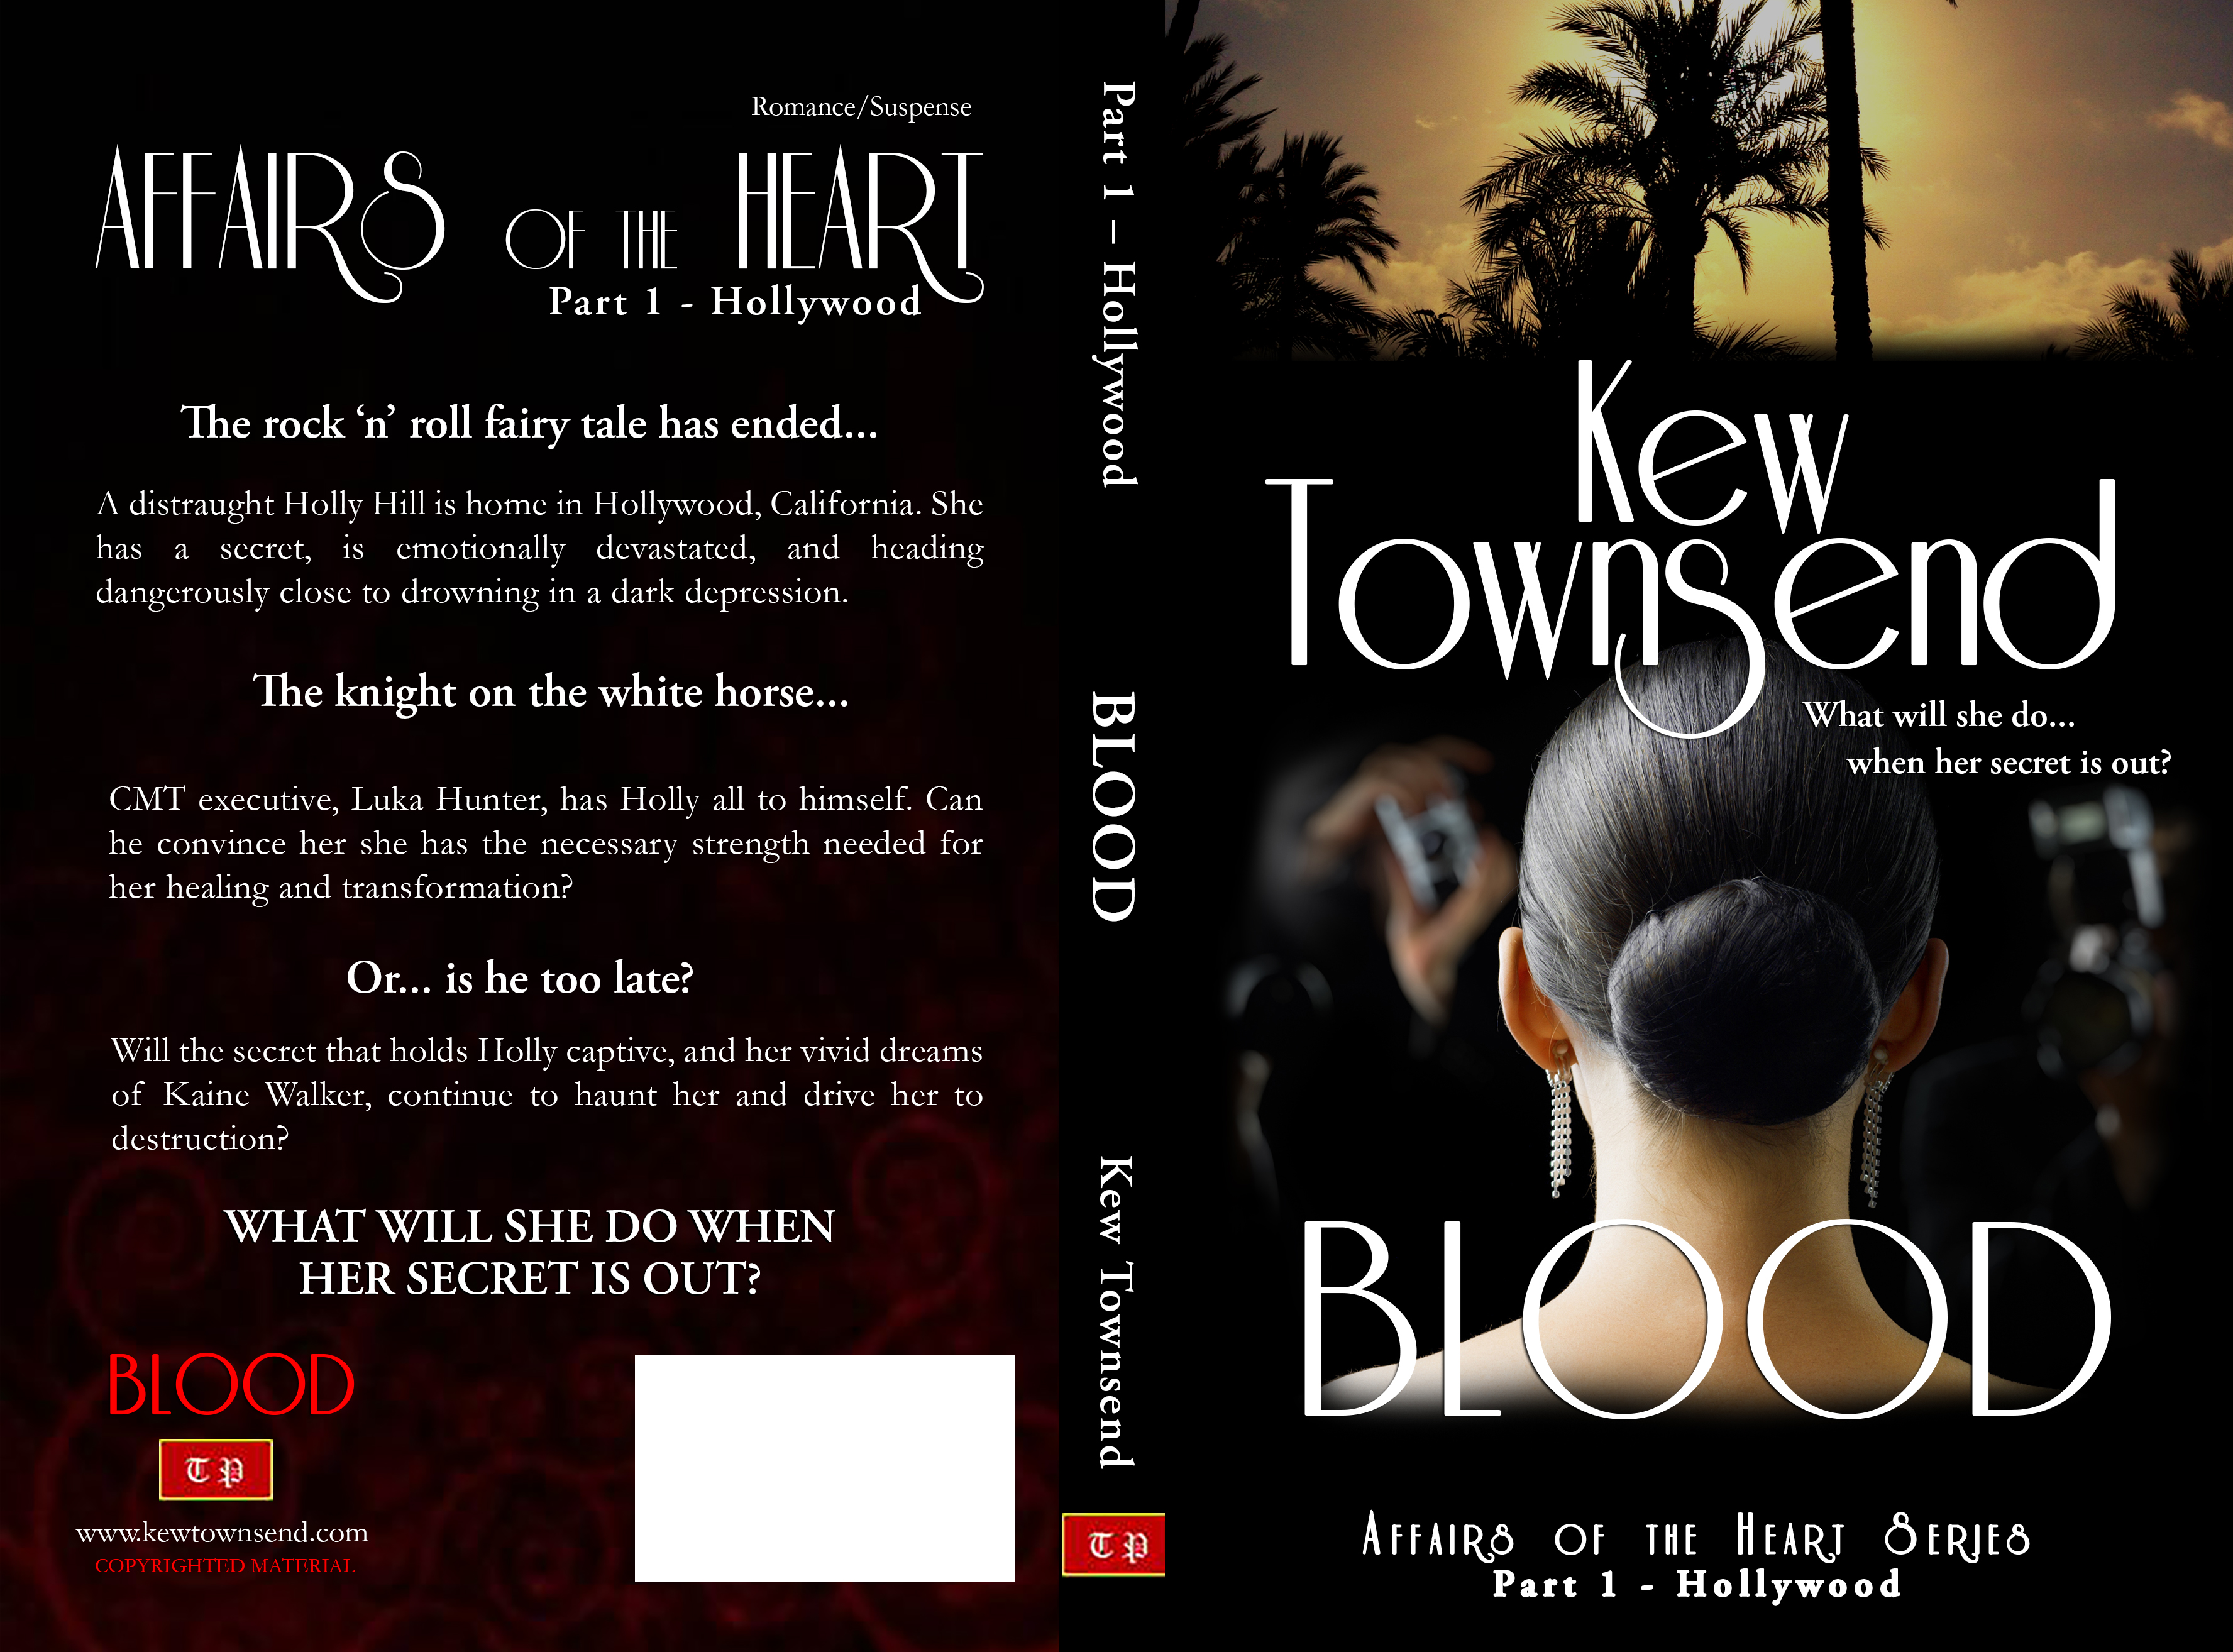 BLOOD Print Cover by Kew Townsend